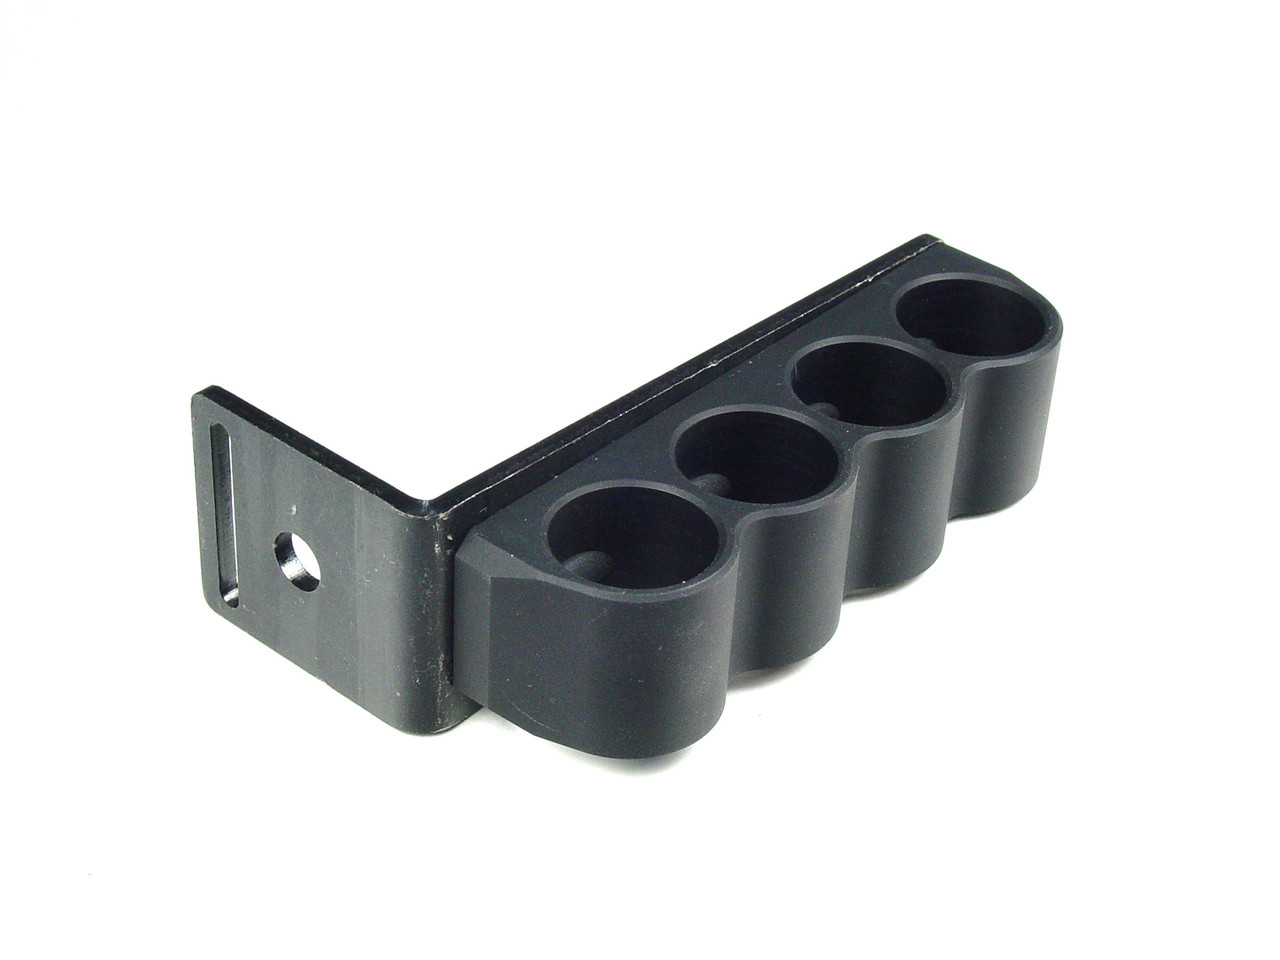 Stock Mount SureShell Carrier For Ben Tac Stocks (Except Ben M4) (4-Shell, 12-GA)